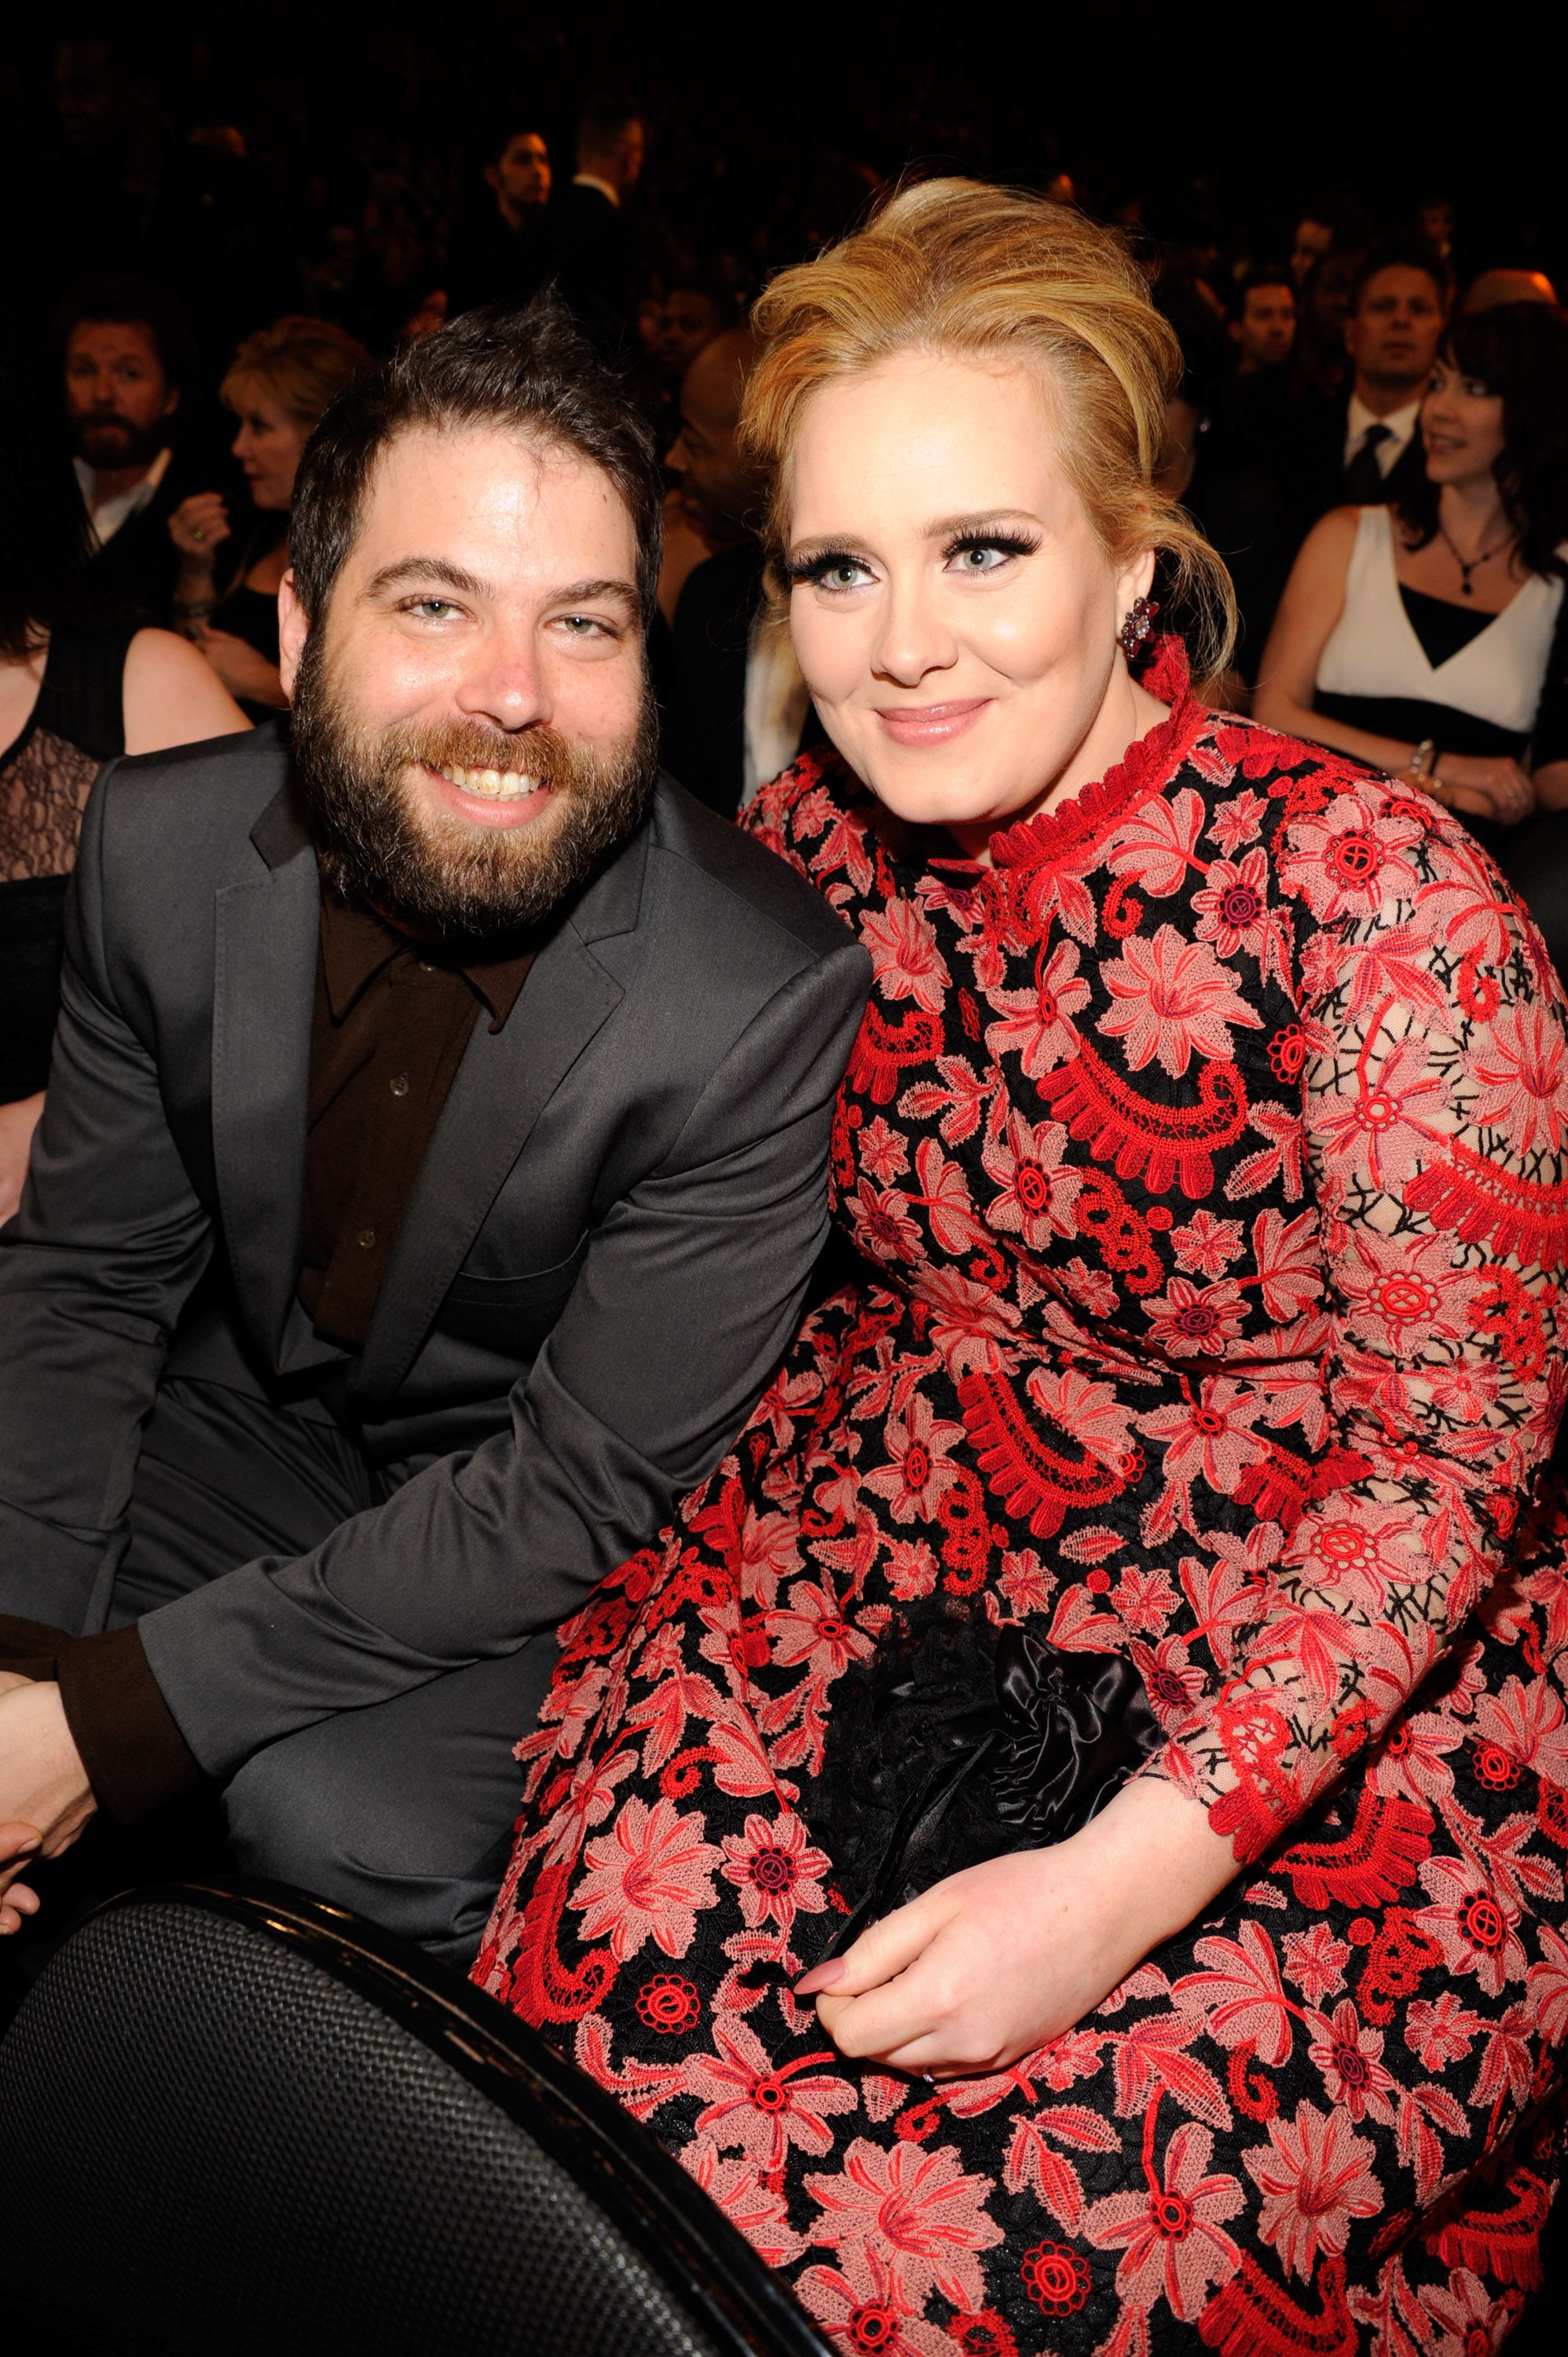 Adele (R) and Simon Konecki attend the 55th Annual GRAMMY Awards at STAPLES Center on February 10, 2013 in Los Angeles, California. | Source: Getty Images